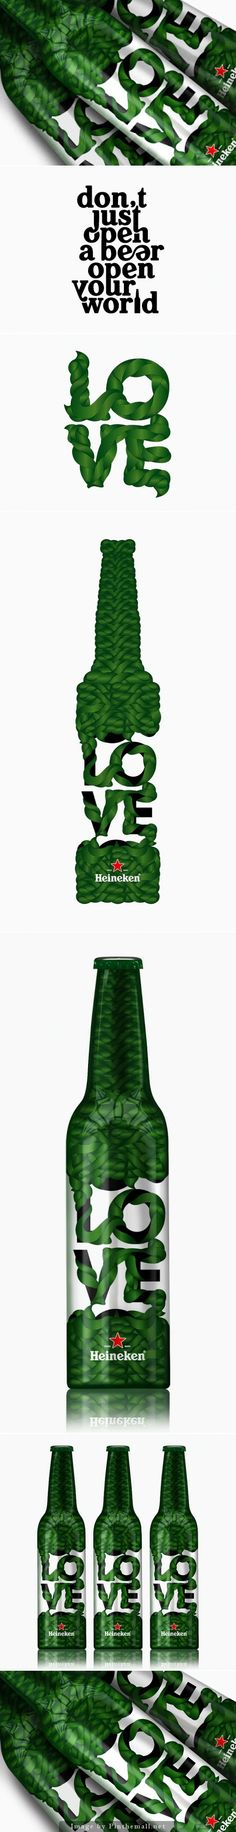 Heineken bottle design for Trafiq Bar & Club